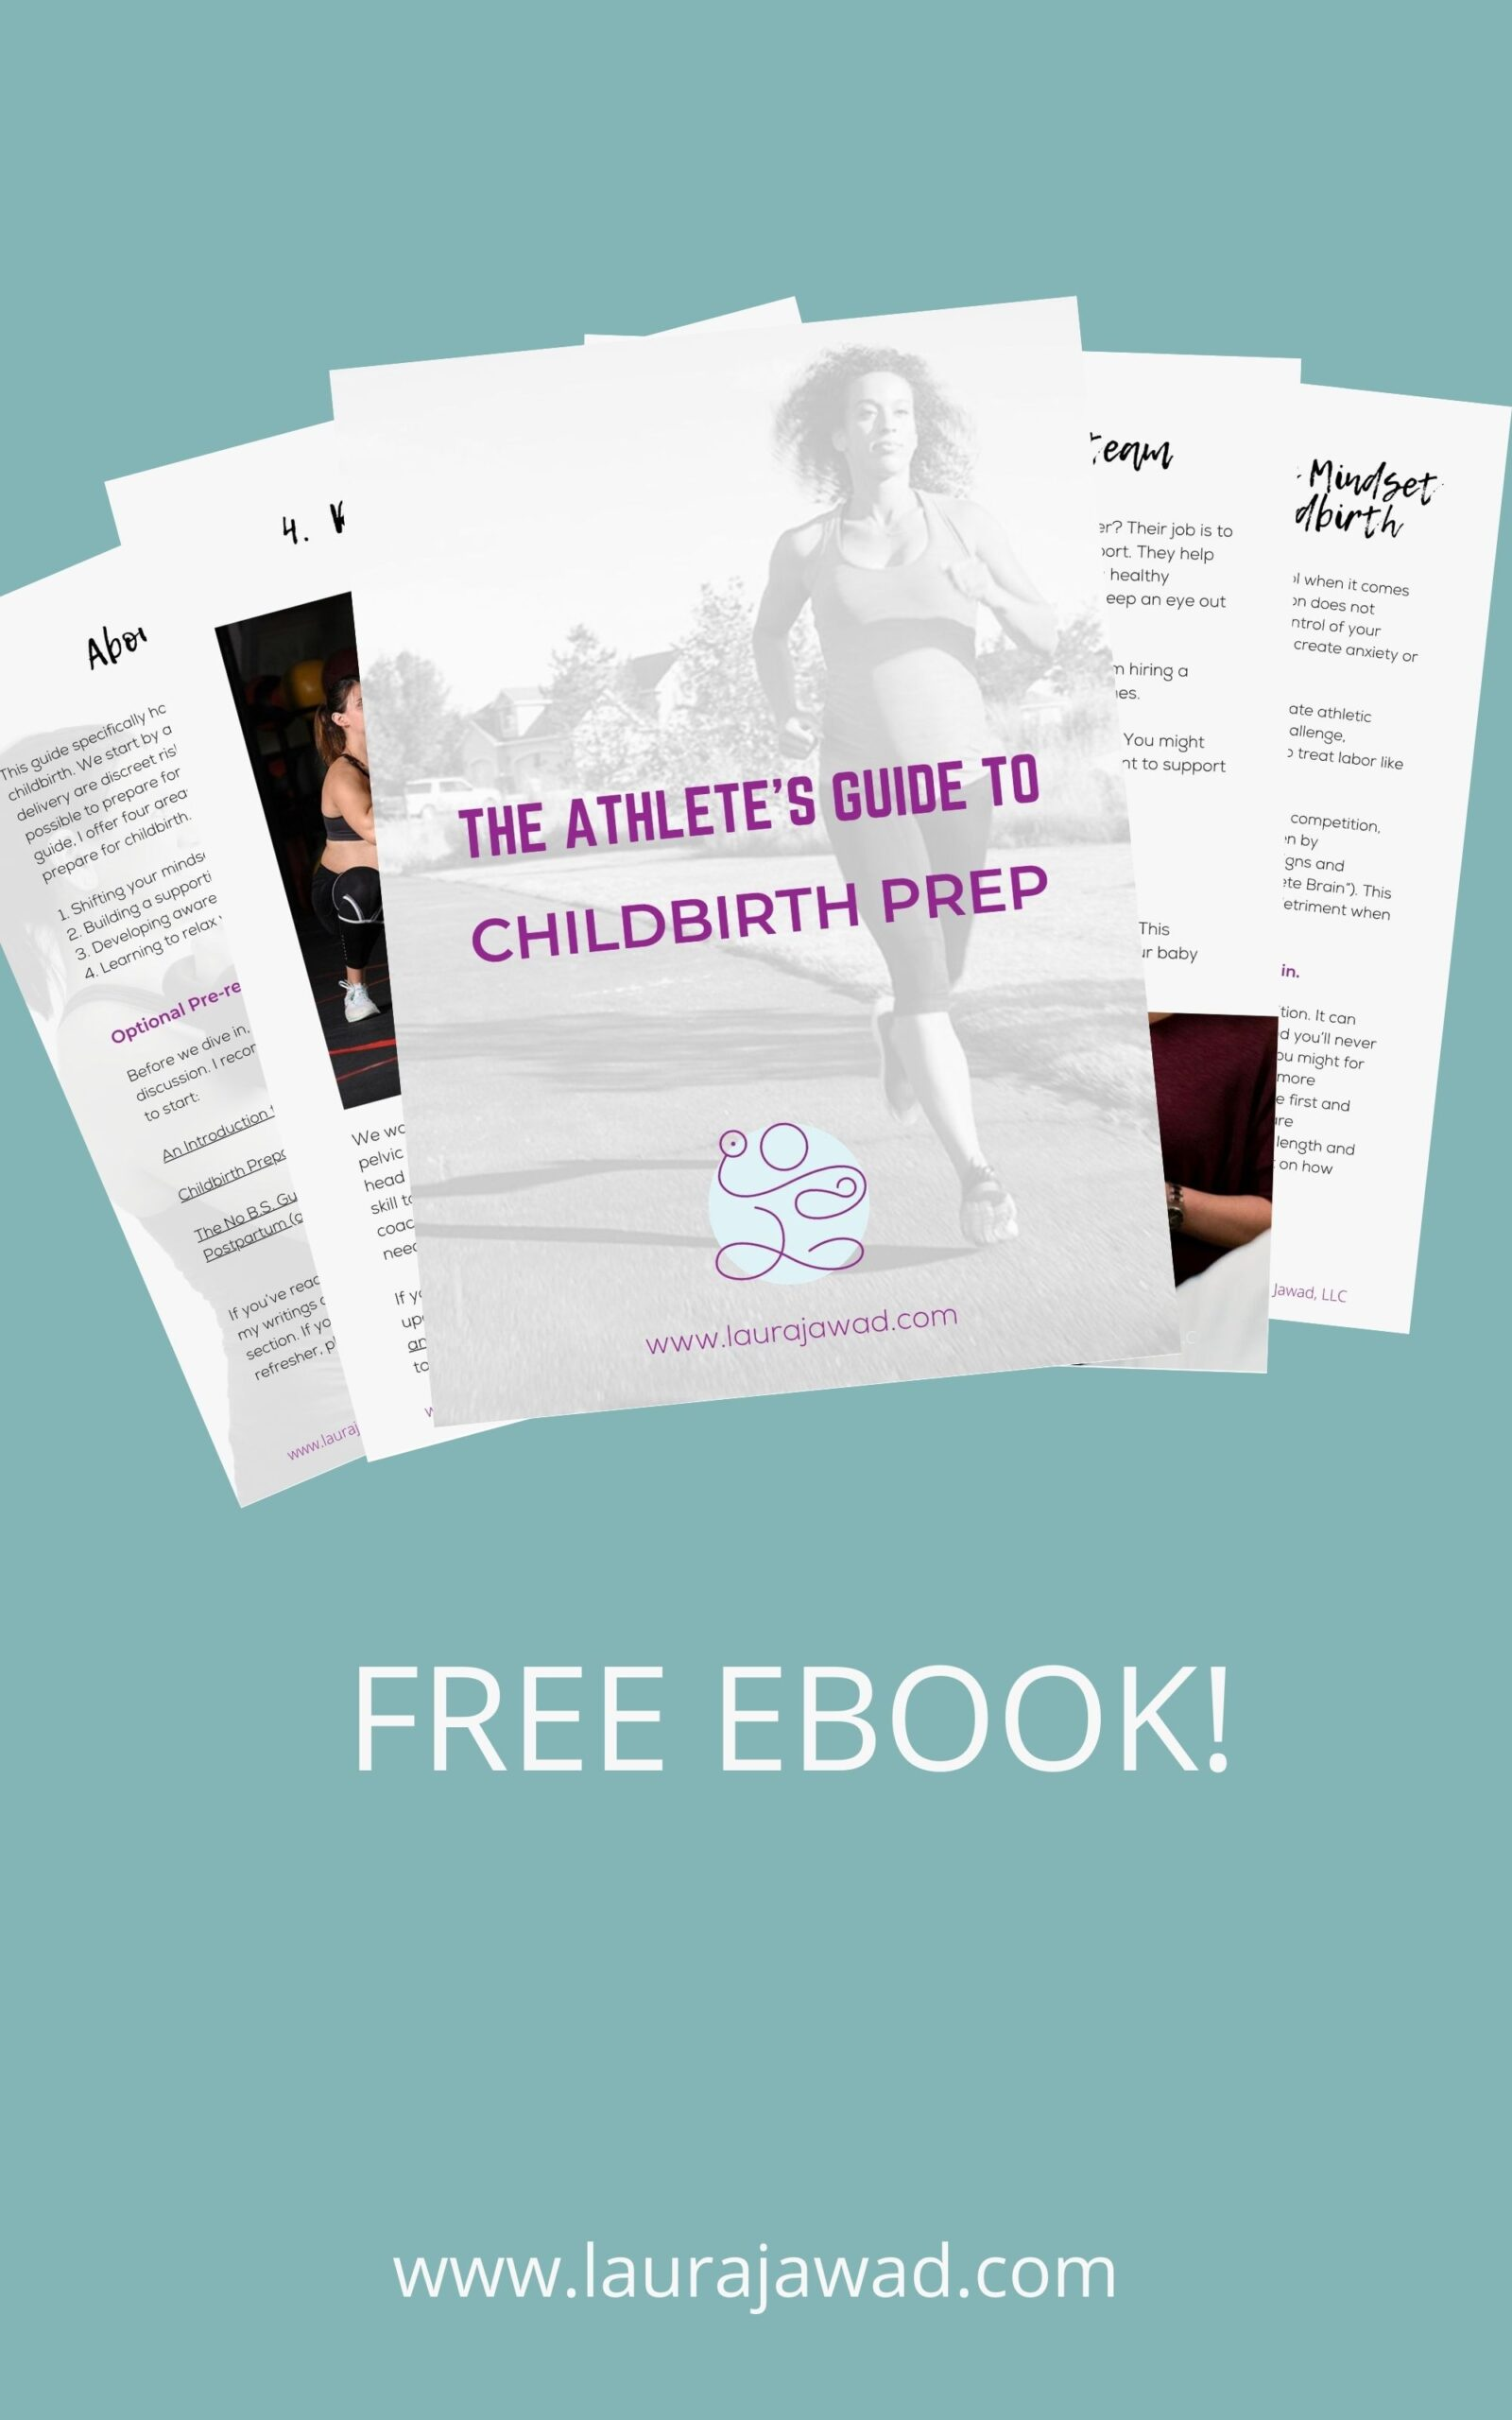 The Athlete's Guide to Childbirth Preparation